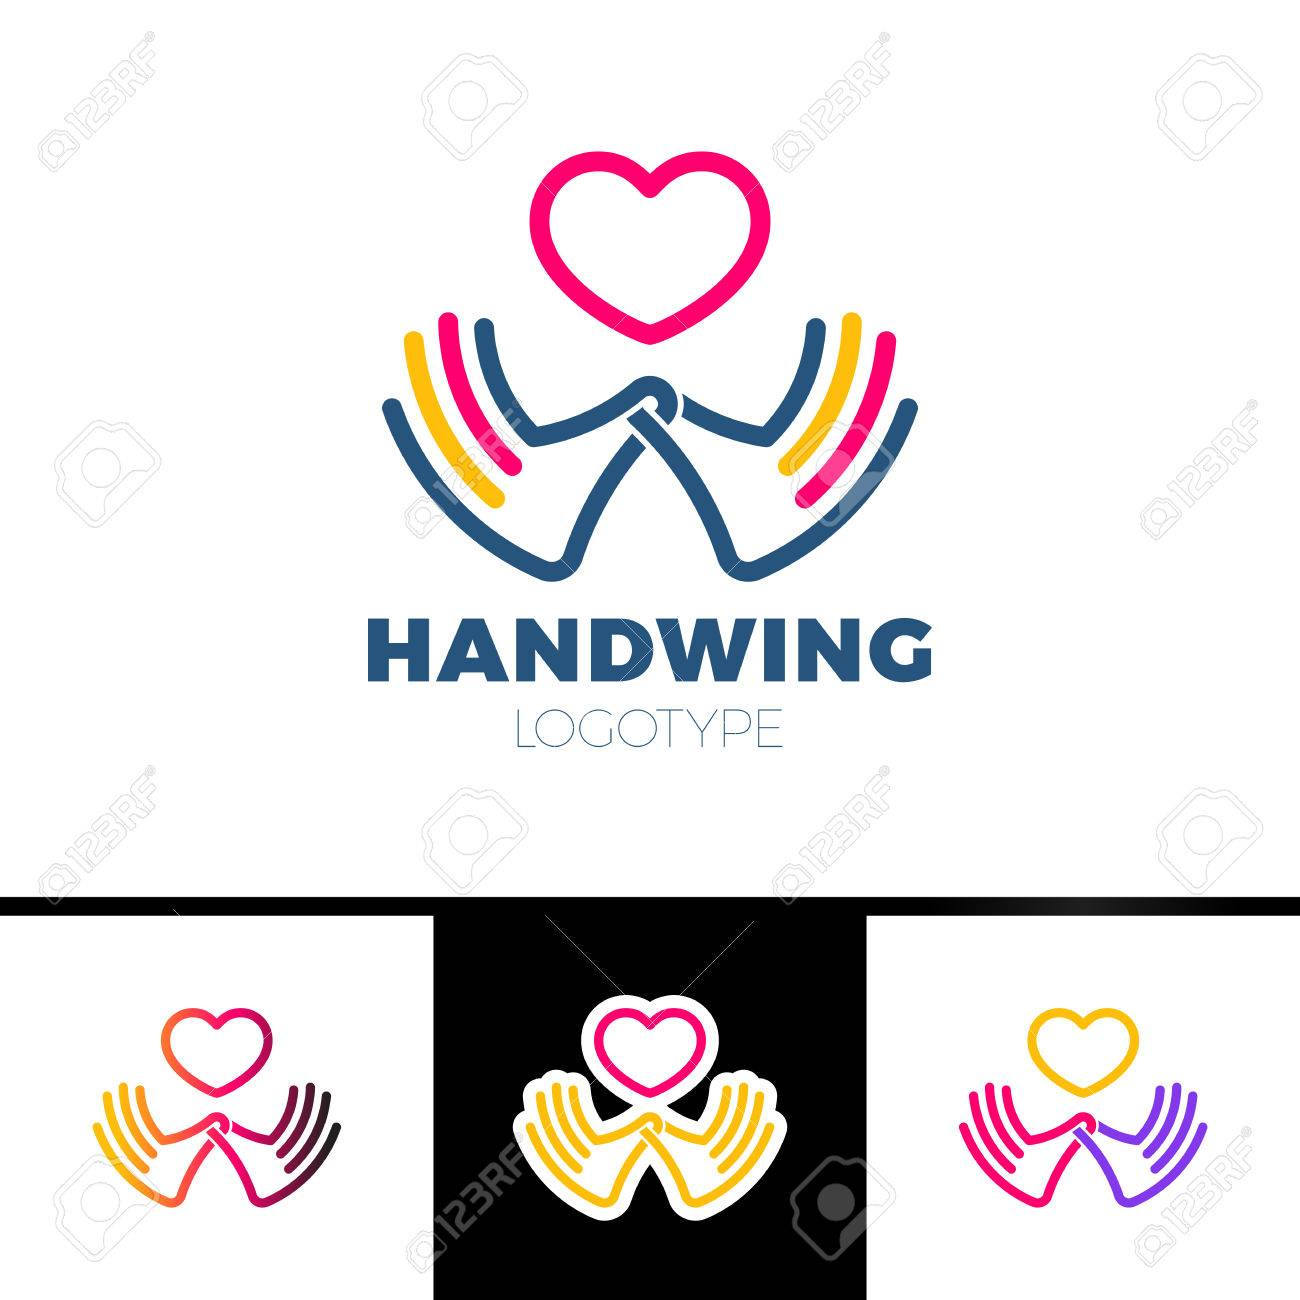 Heart in hand symbol sign icon logo template for charity heart in hand symbol sign icon logo template for charity health buycottarizona Gallery